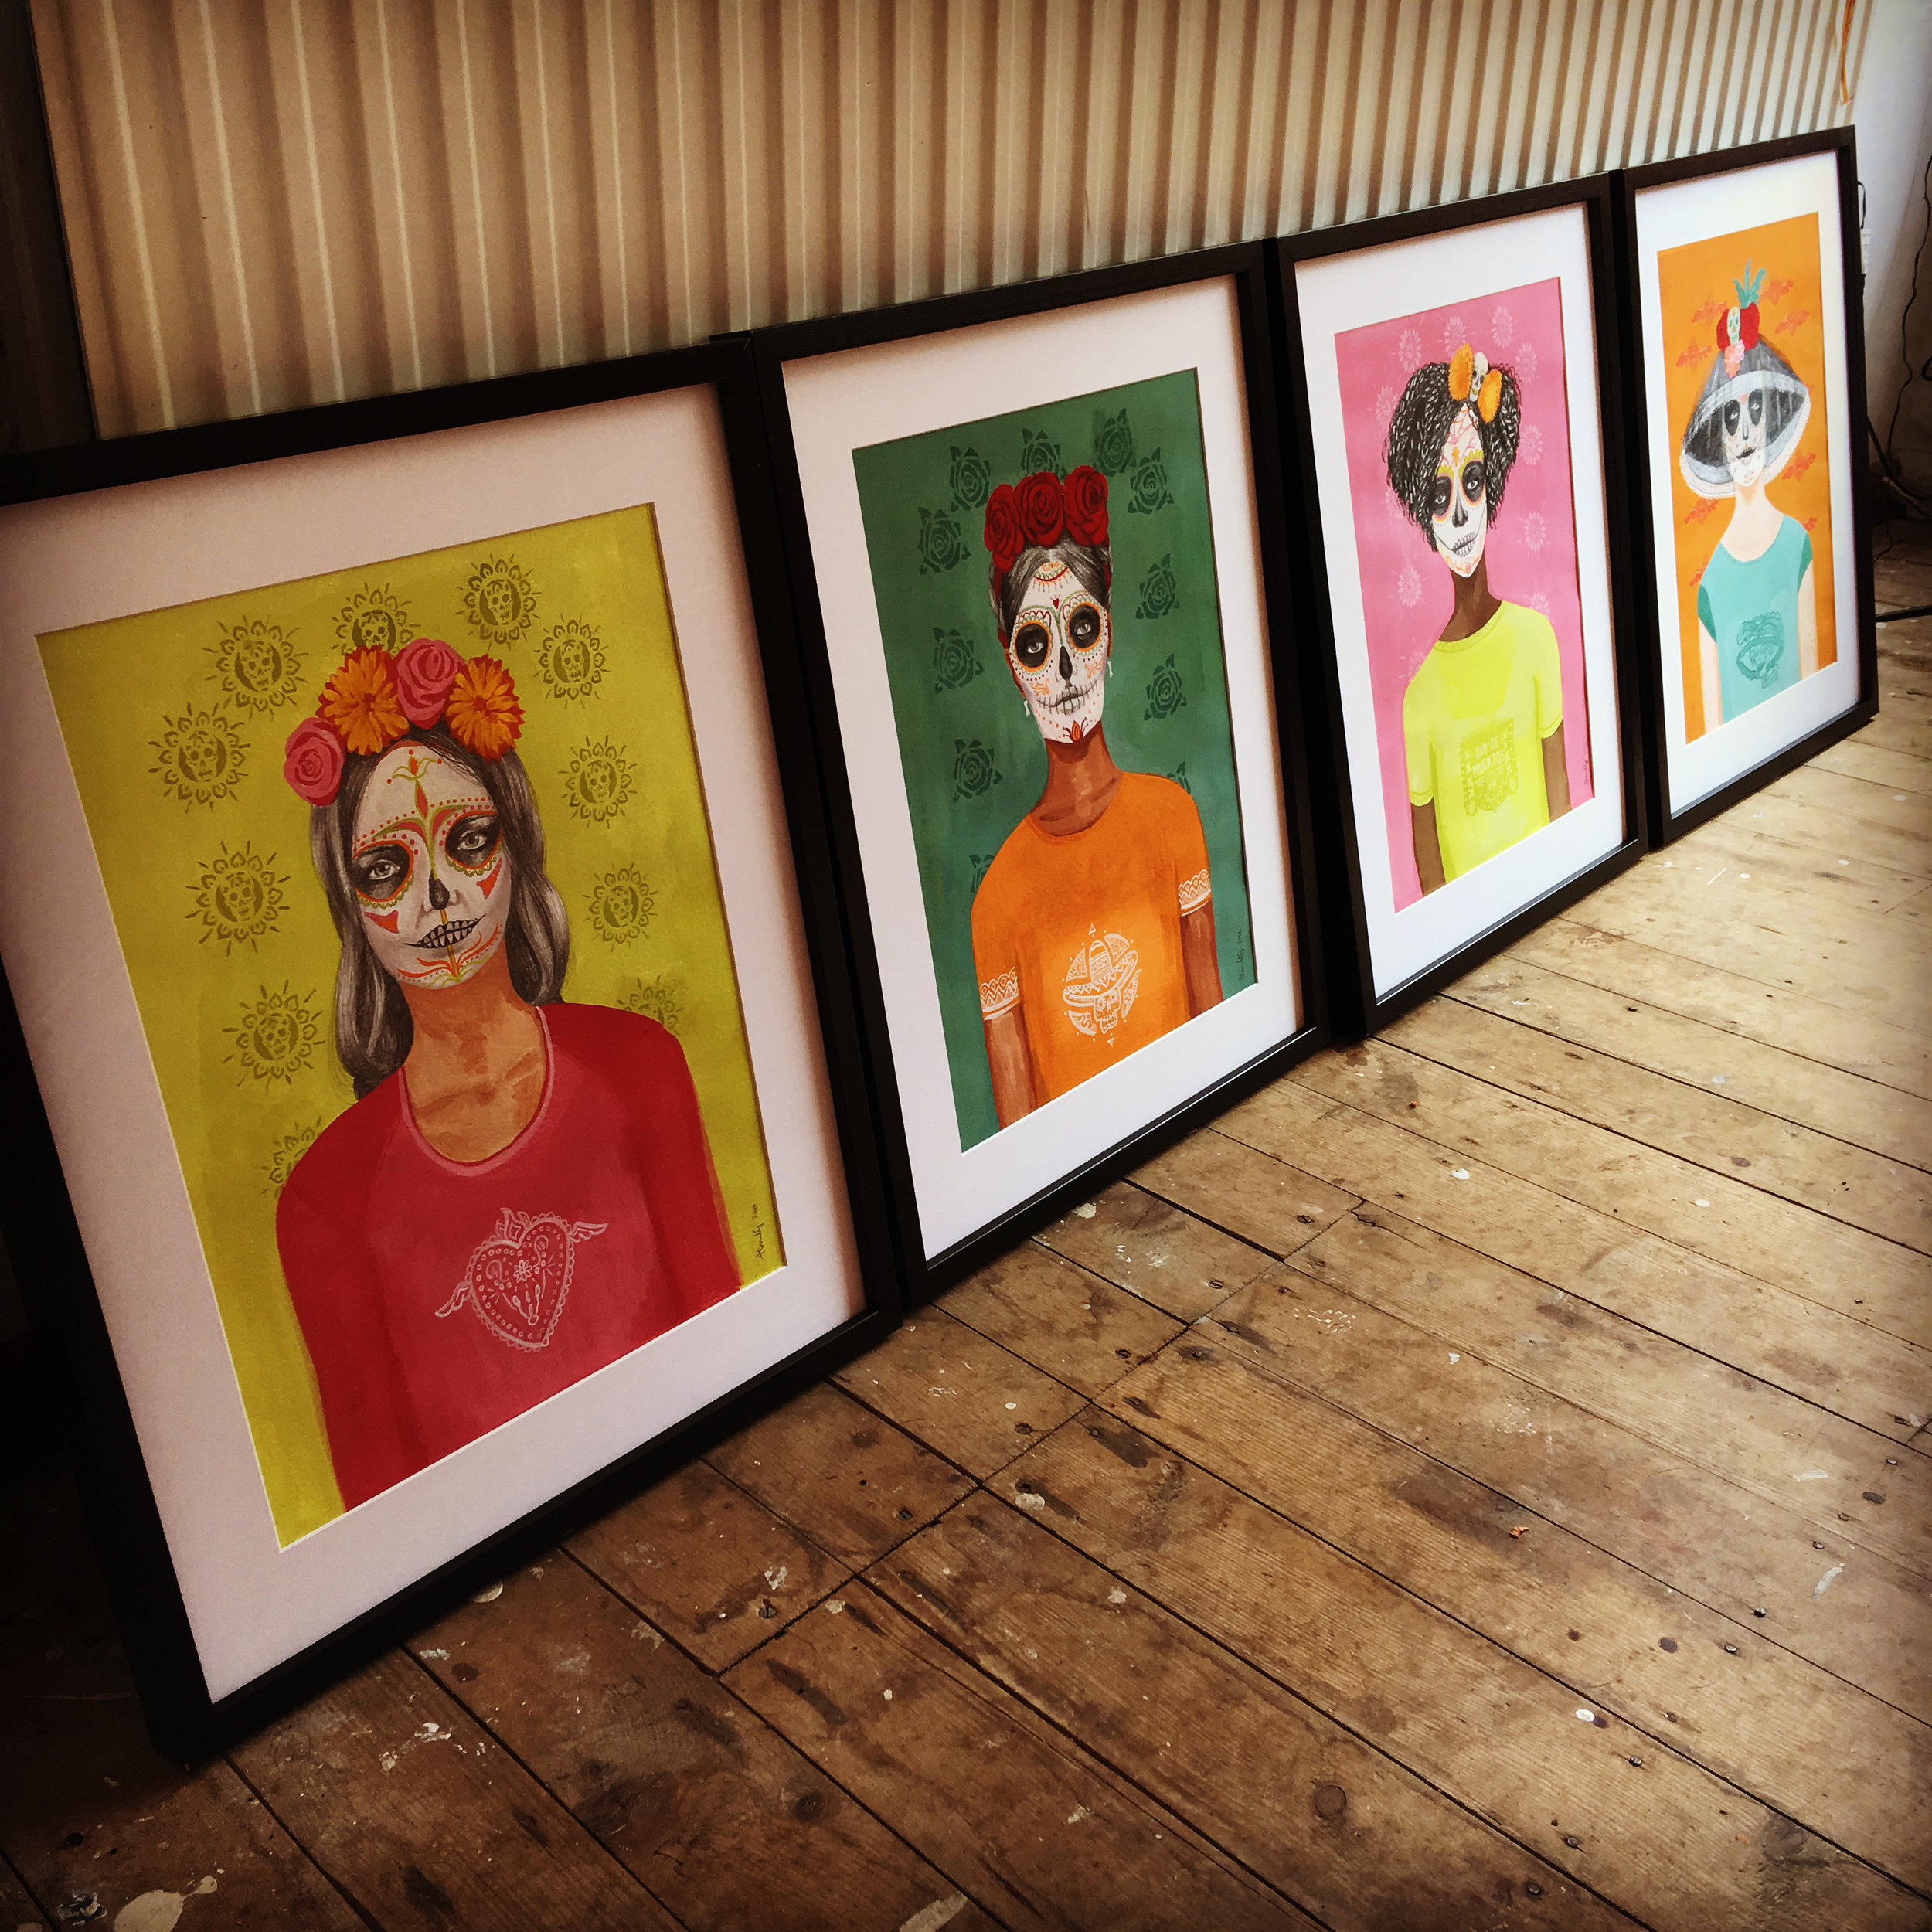 Framing the images ready for Legacy Arts Gallery